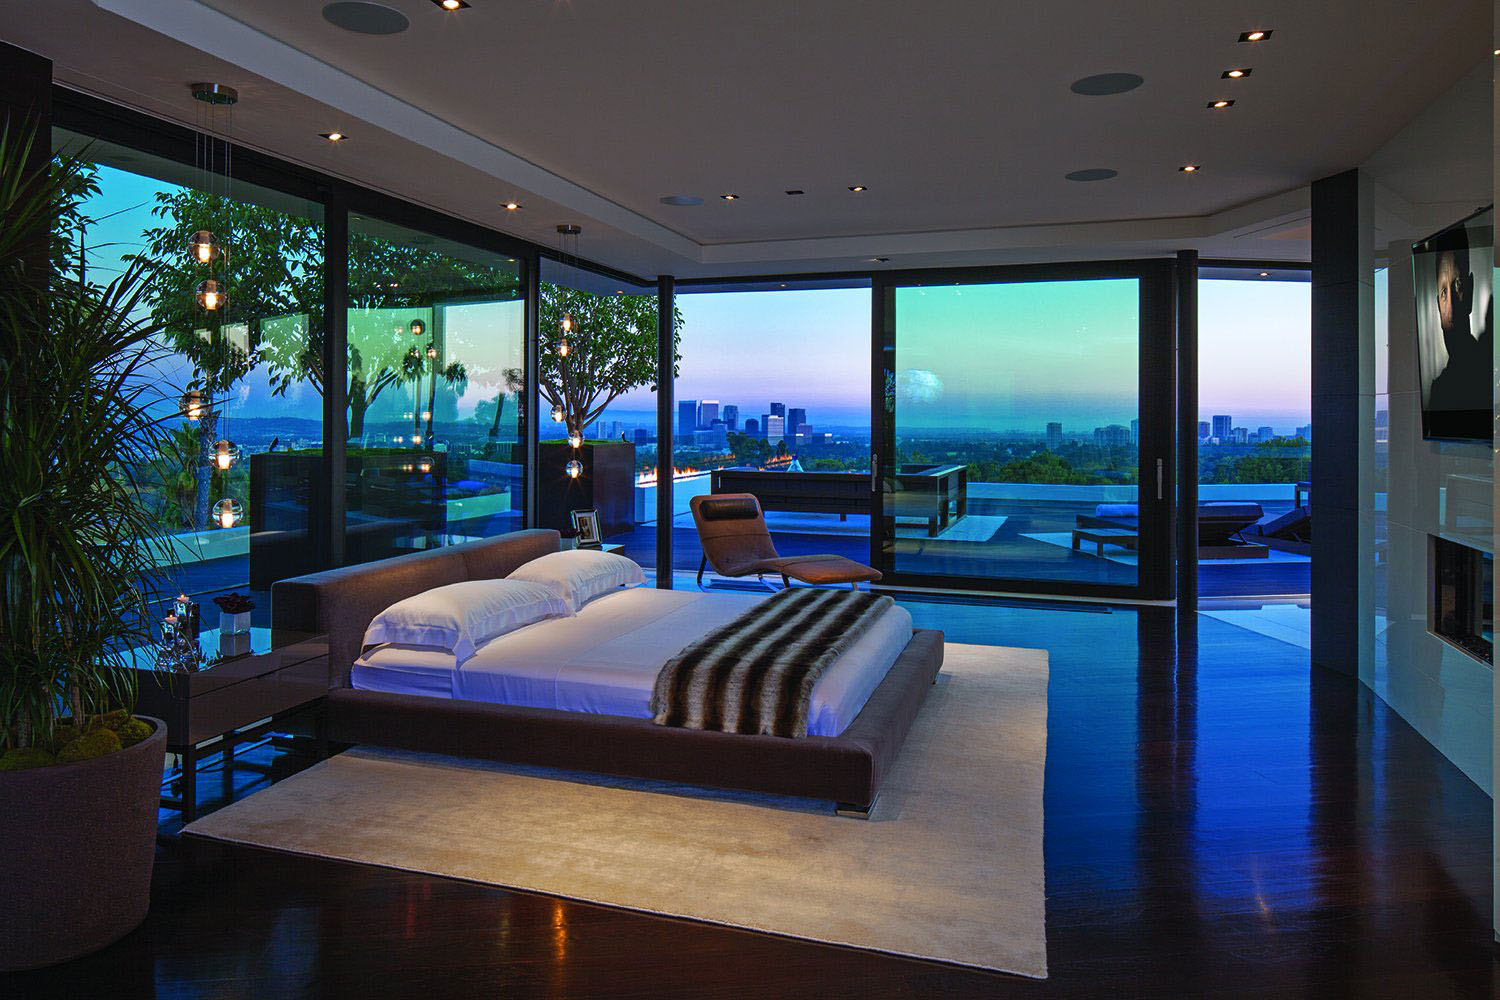 World Class Beverly Hills Contemporary Luxury Home With Dramatic Views IDesignArch Interior